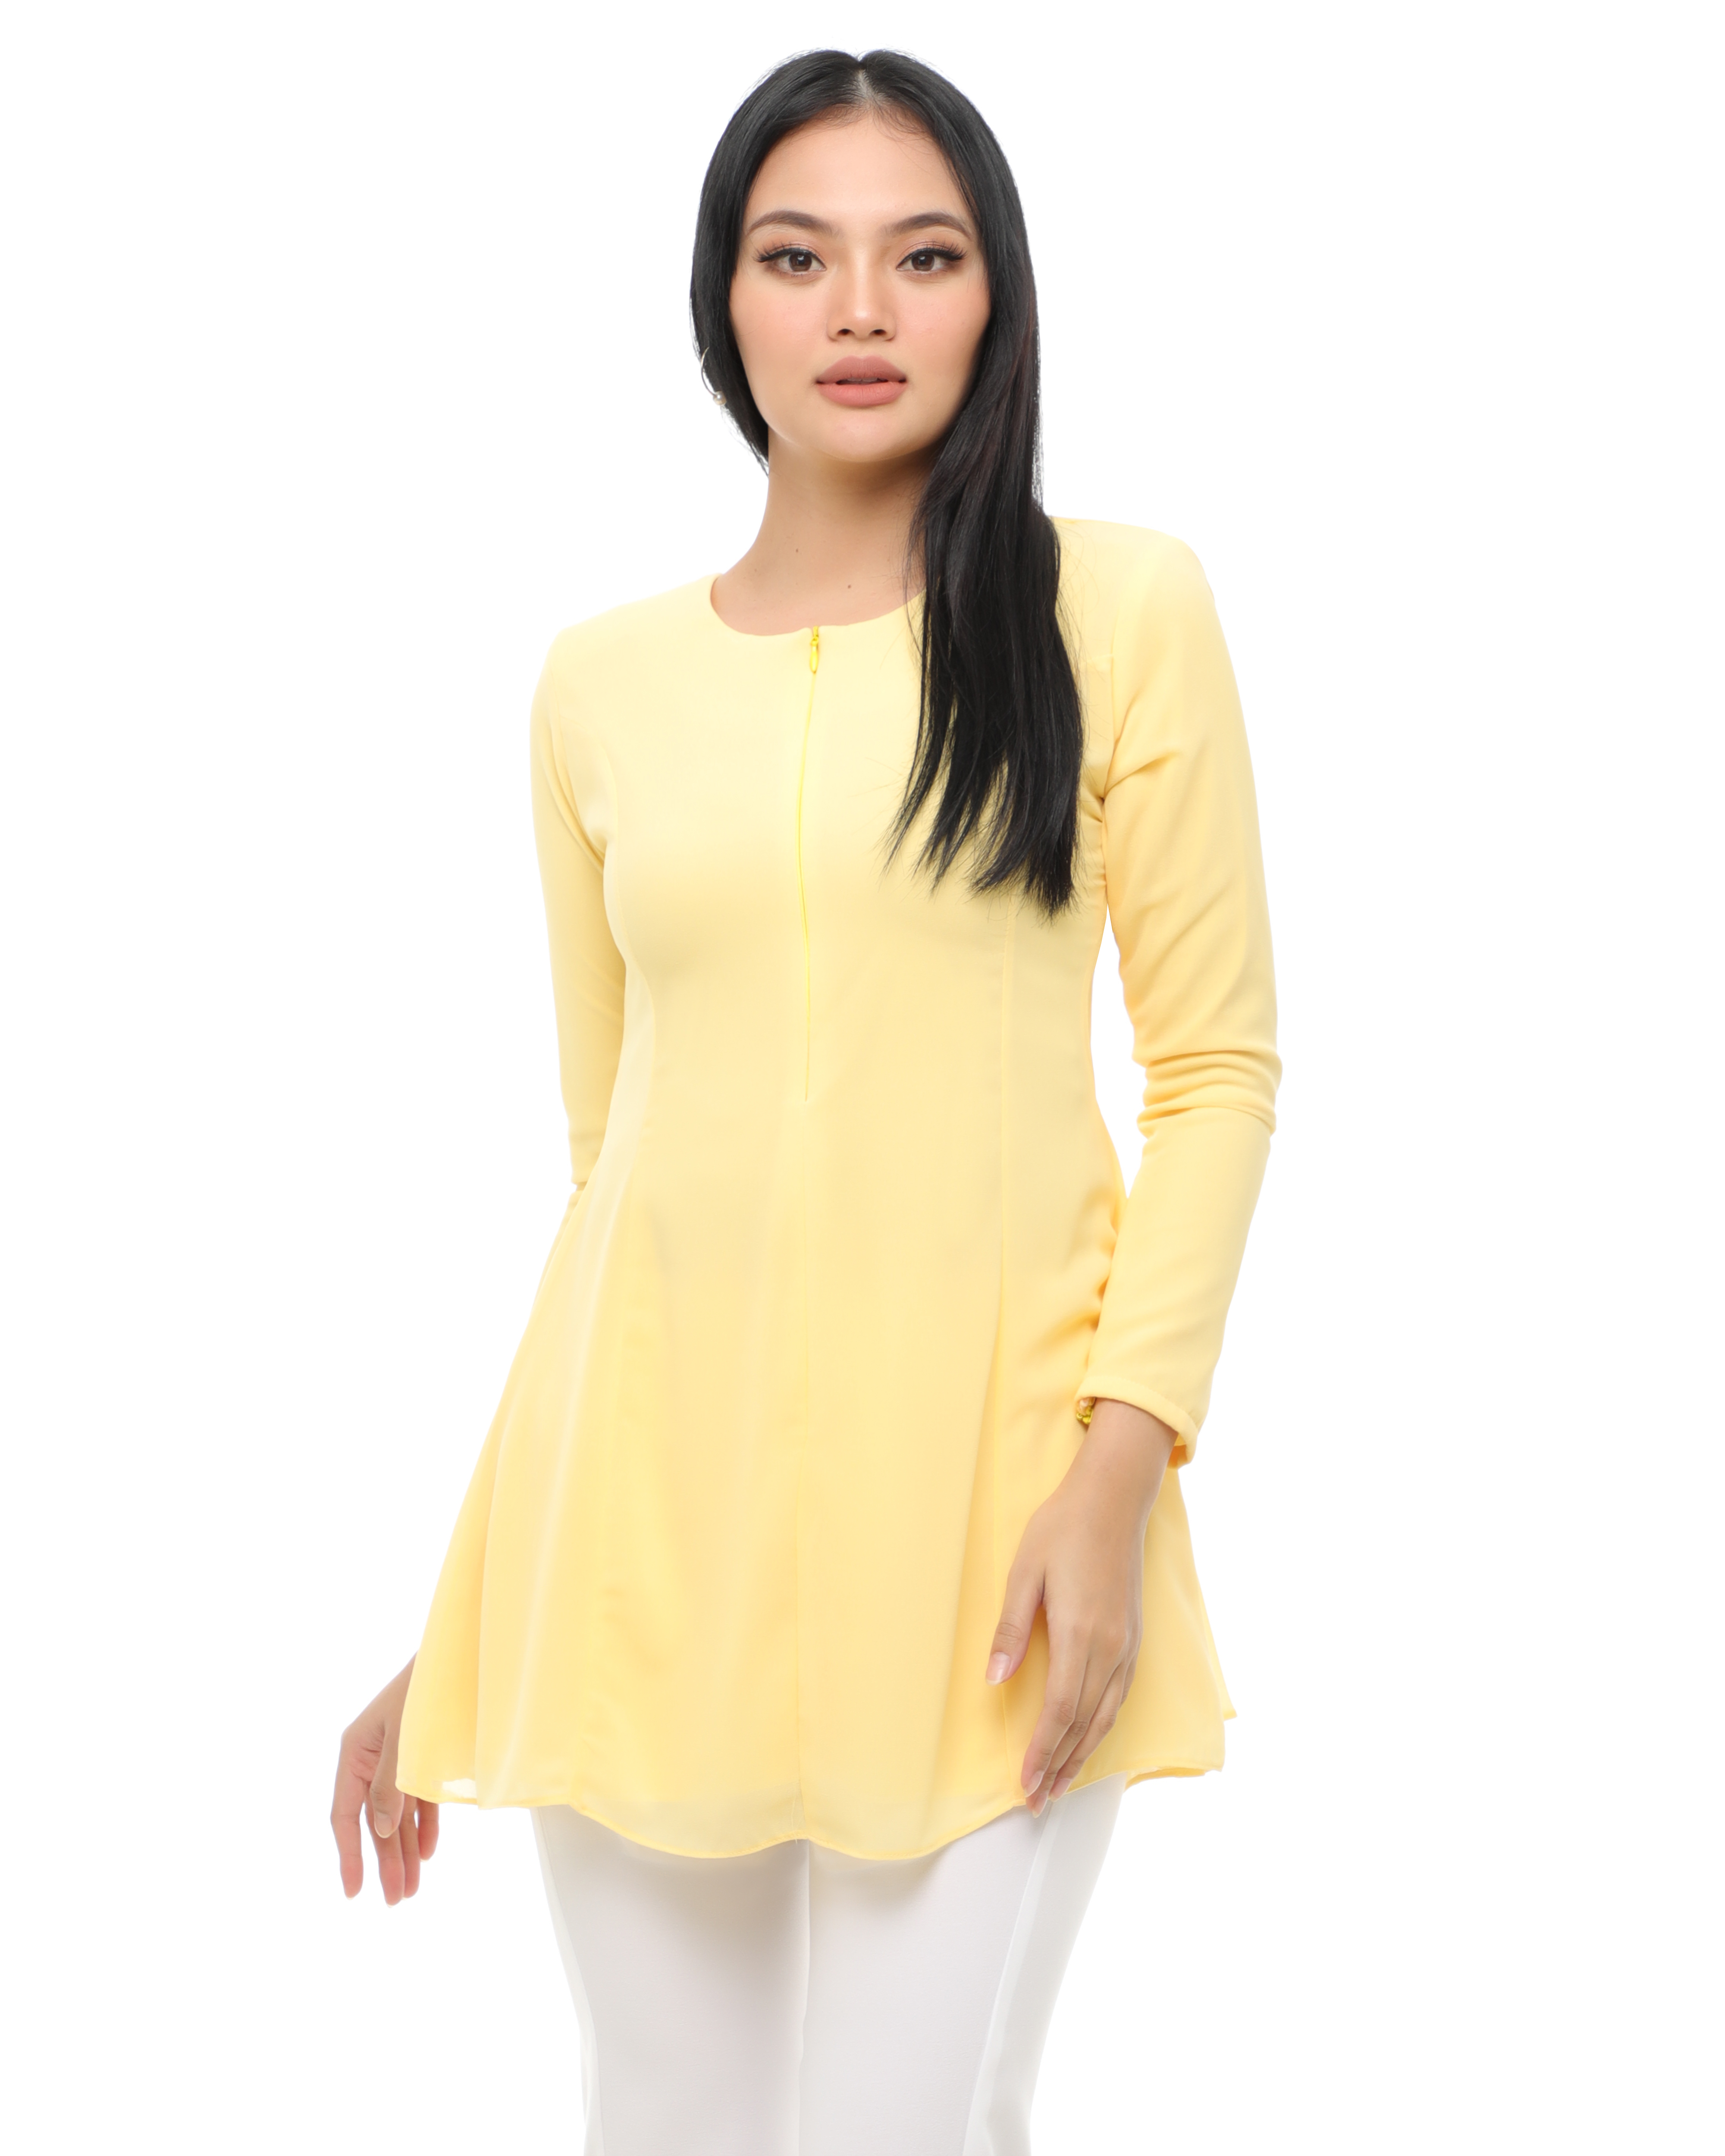 Klaudia v3 - Soft Yellow